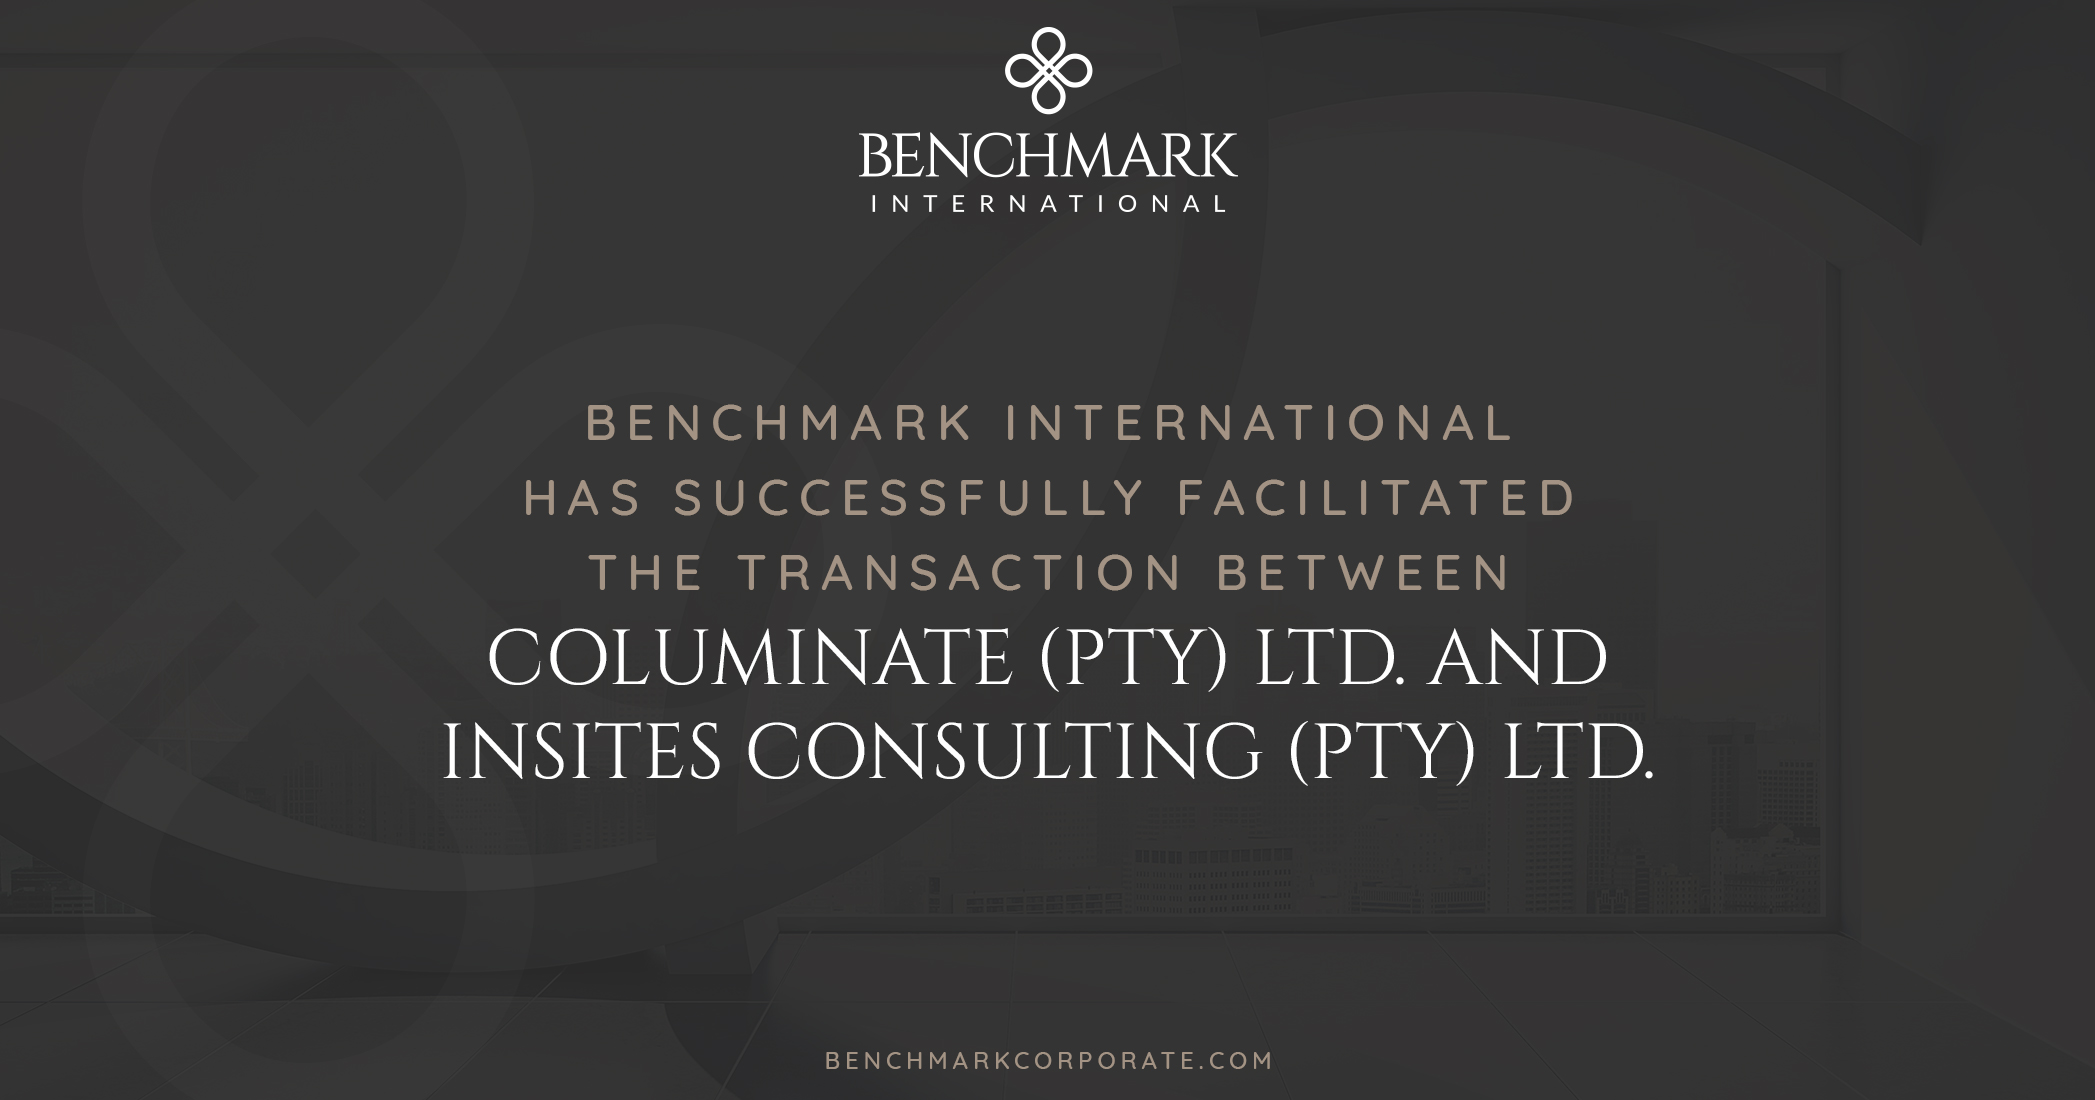 Benchmark International Successfully Facilitated the Acquisition of Columinate (Pty) Ltd. to InSites Consulting (Pty) Ltd.